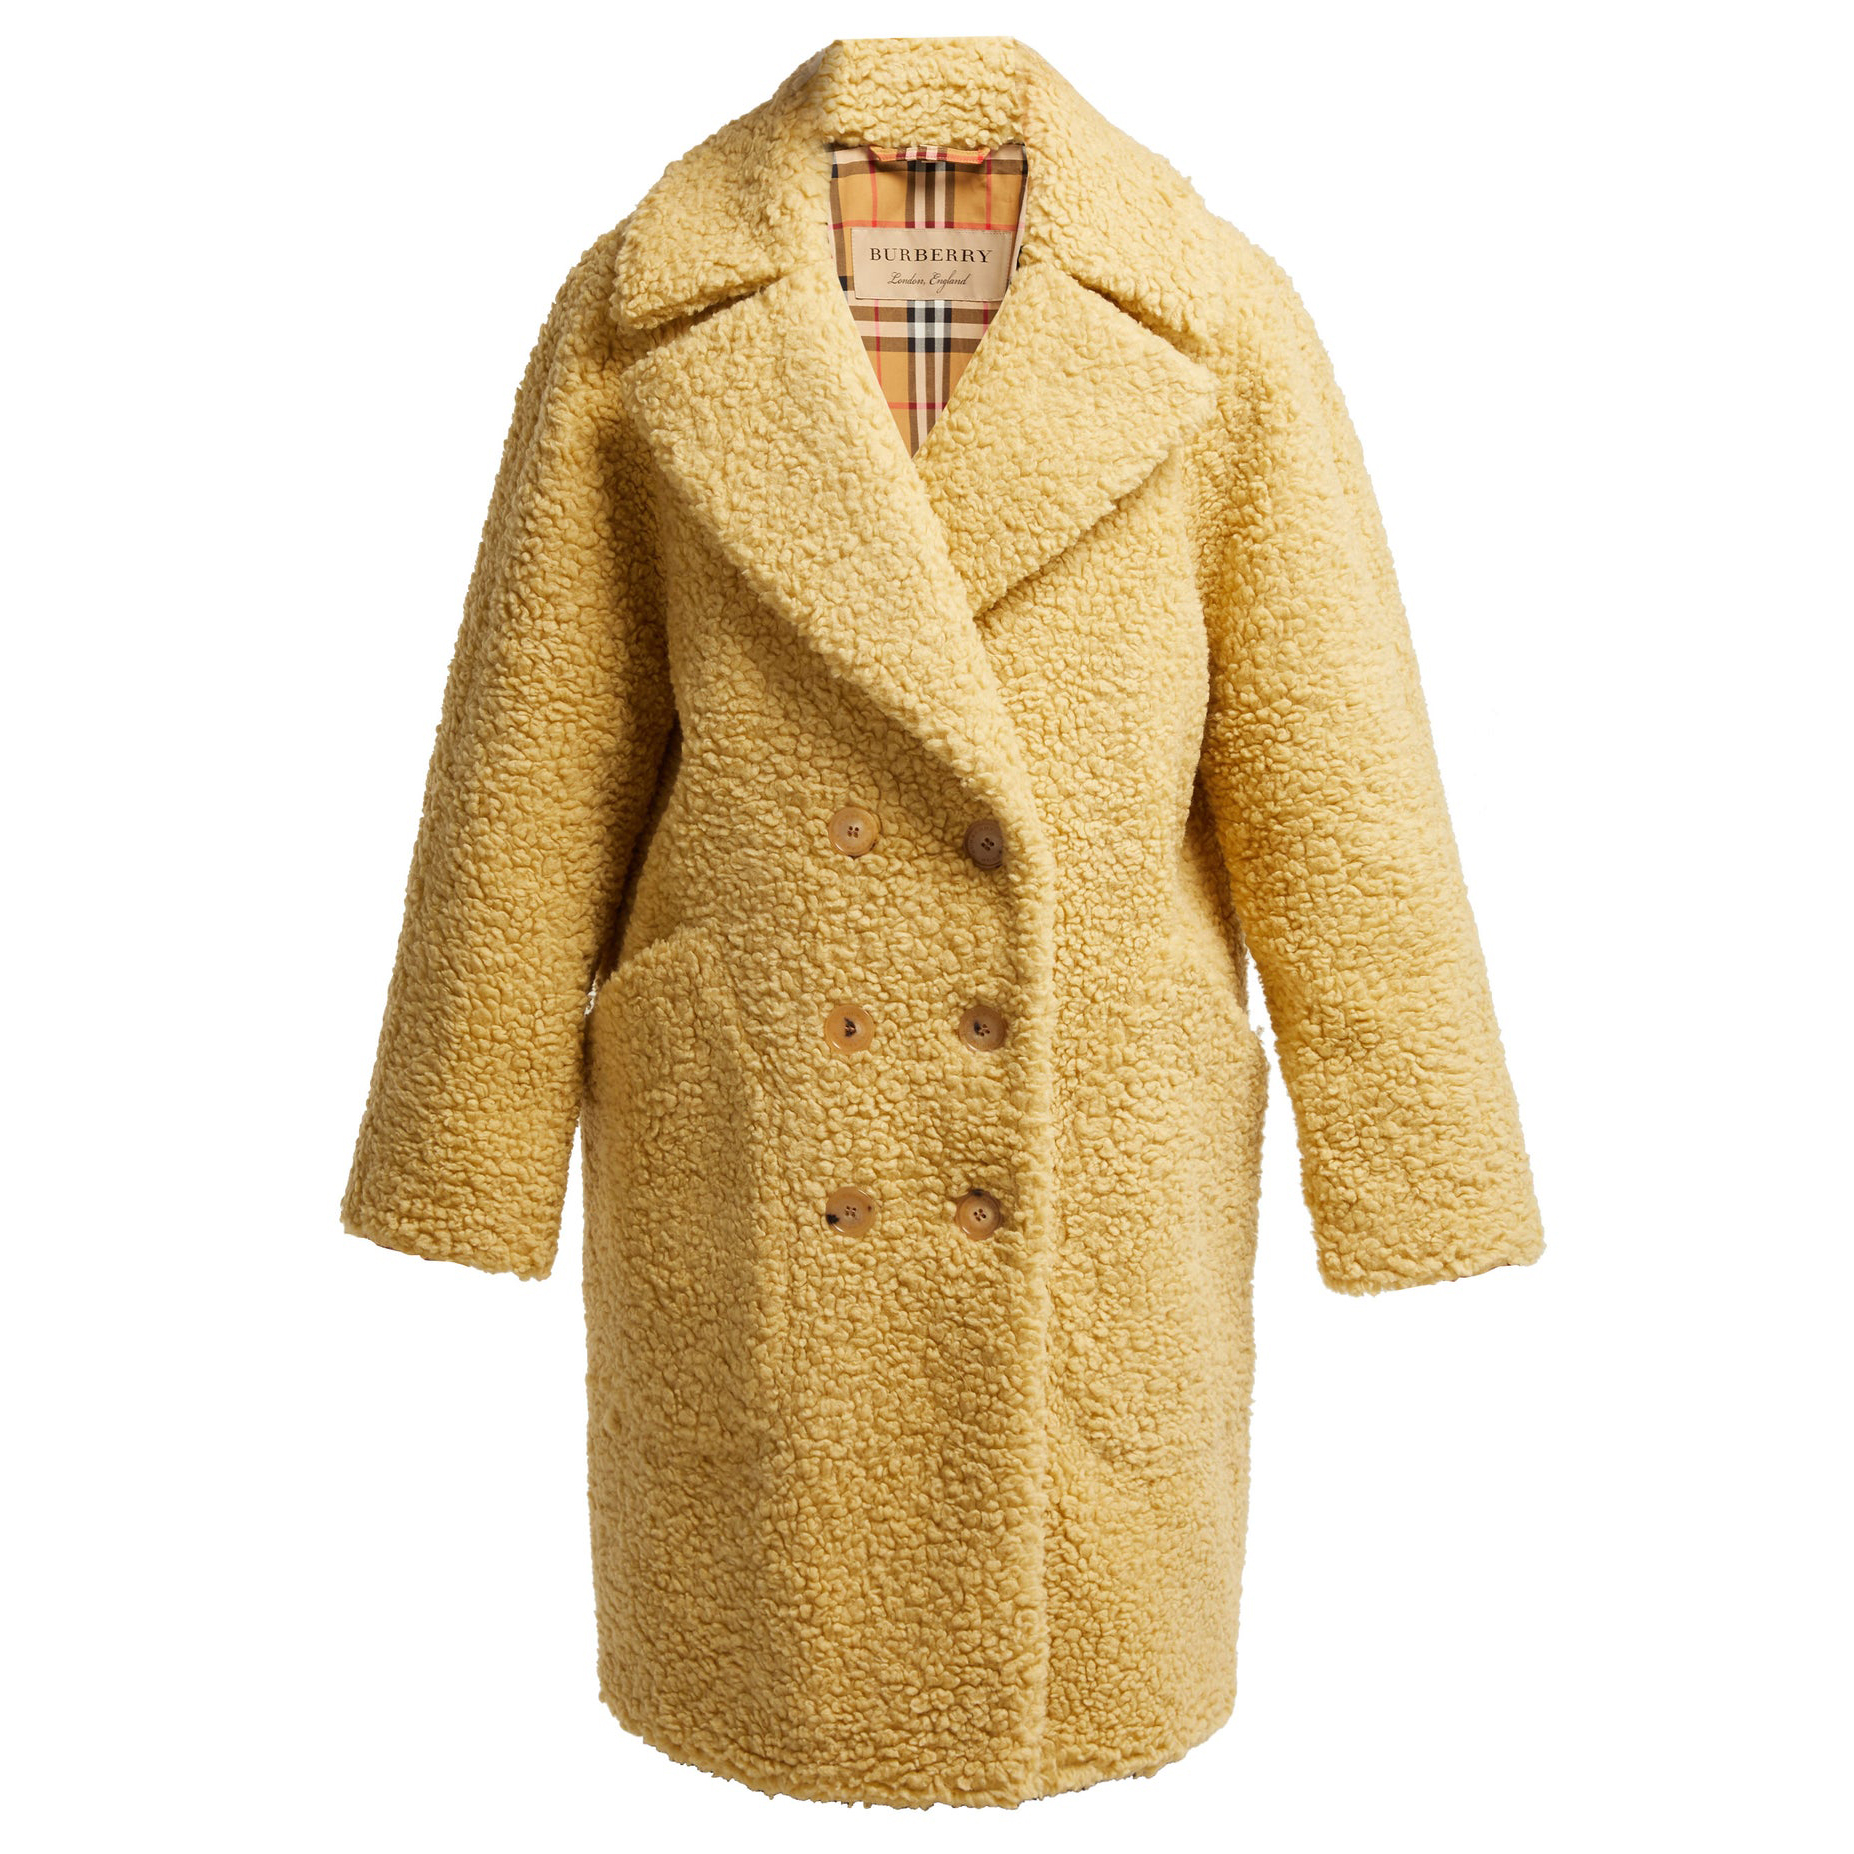 Willingstone wool-blend teddy coat Burberry